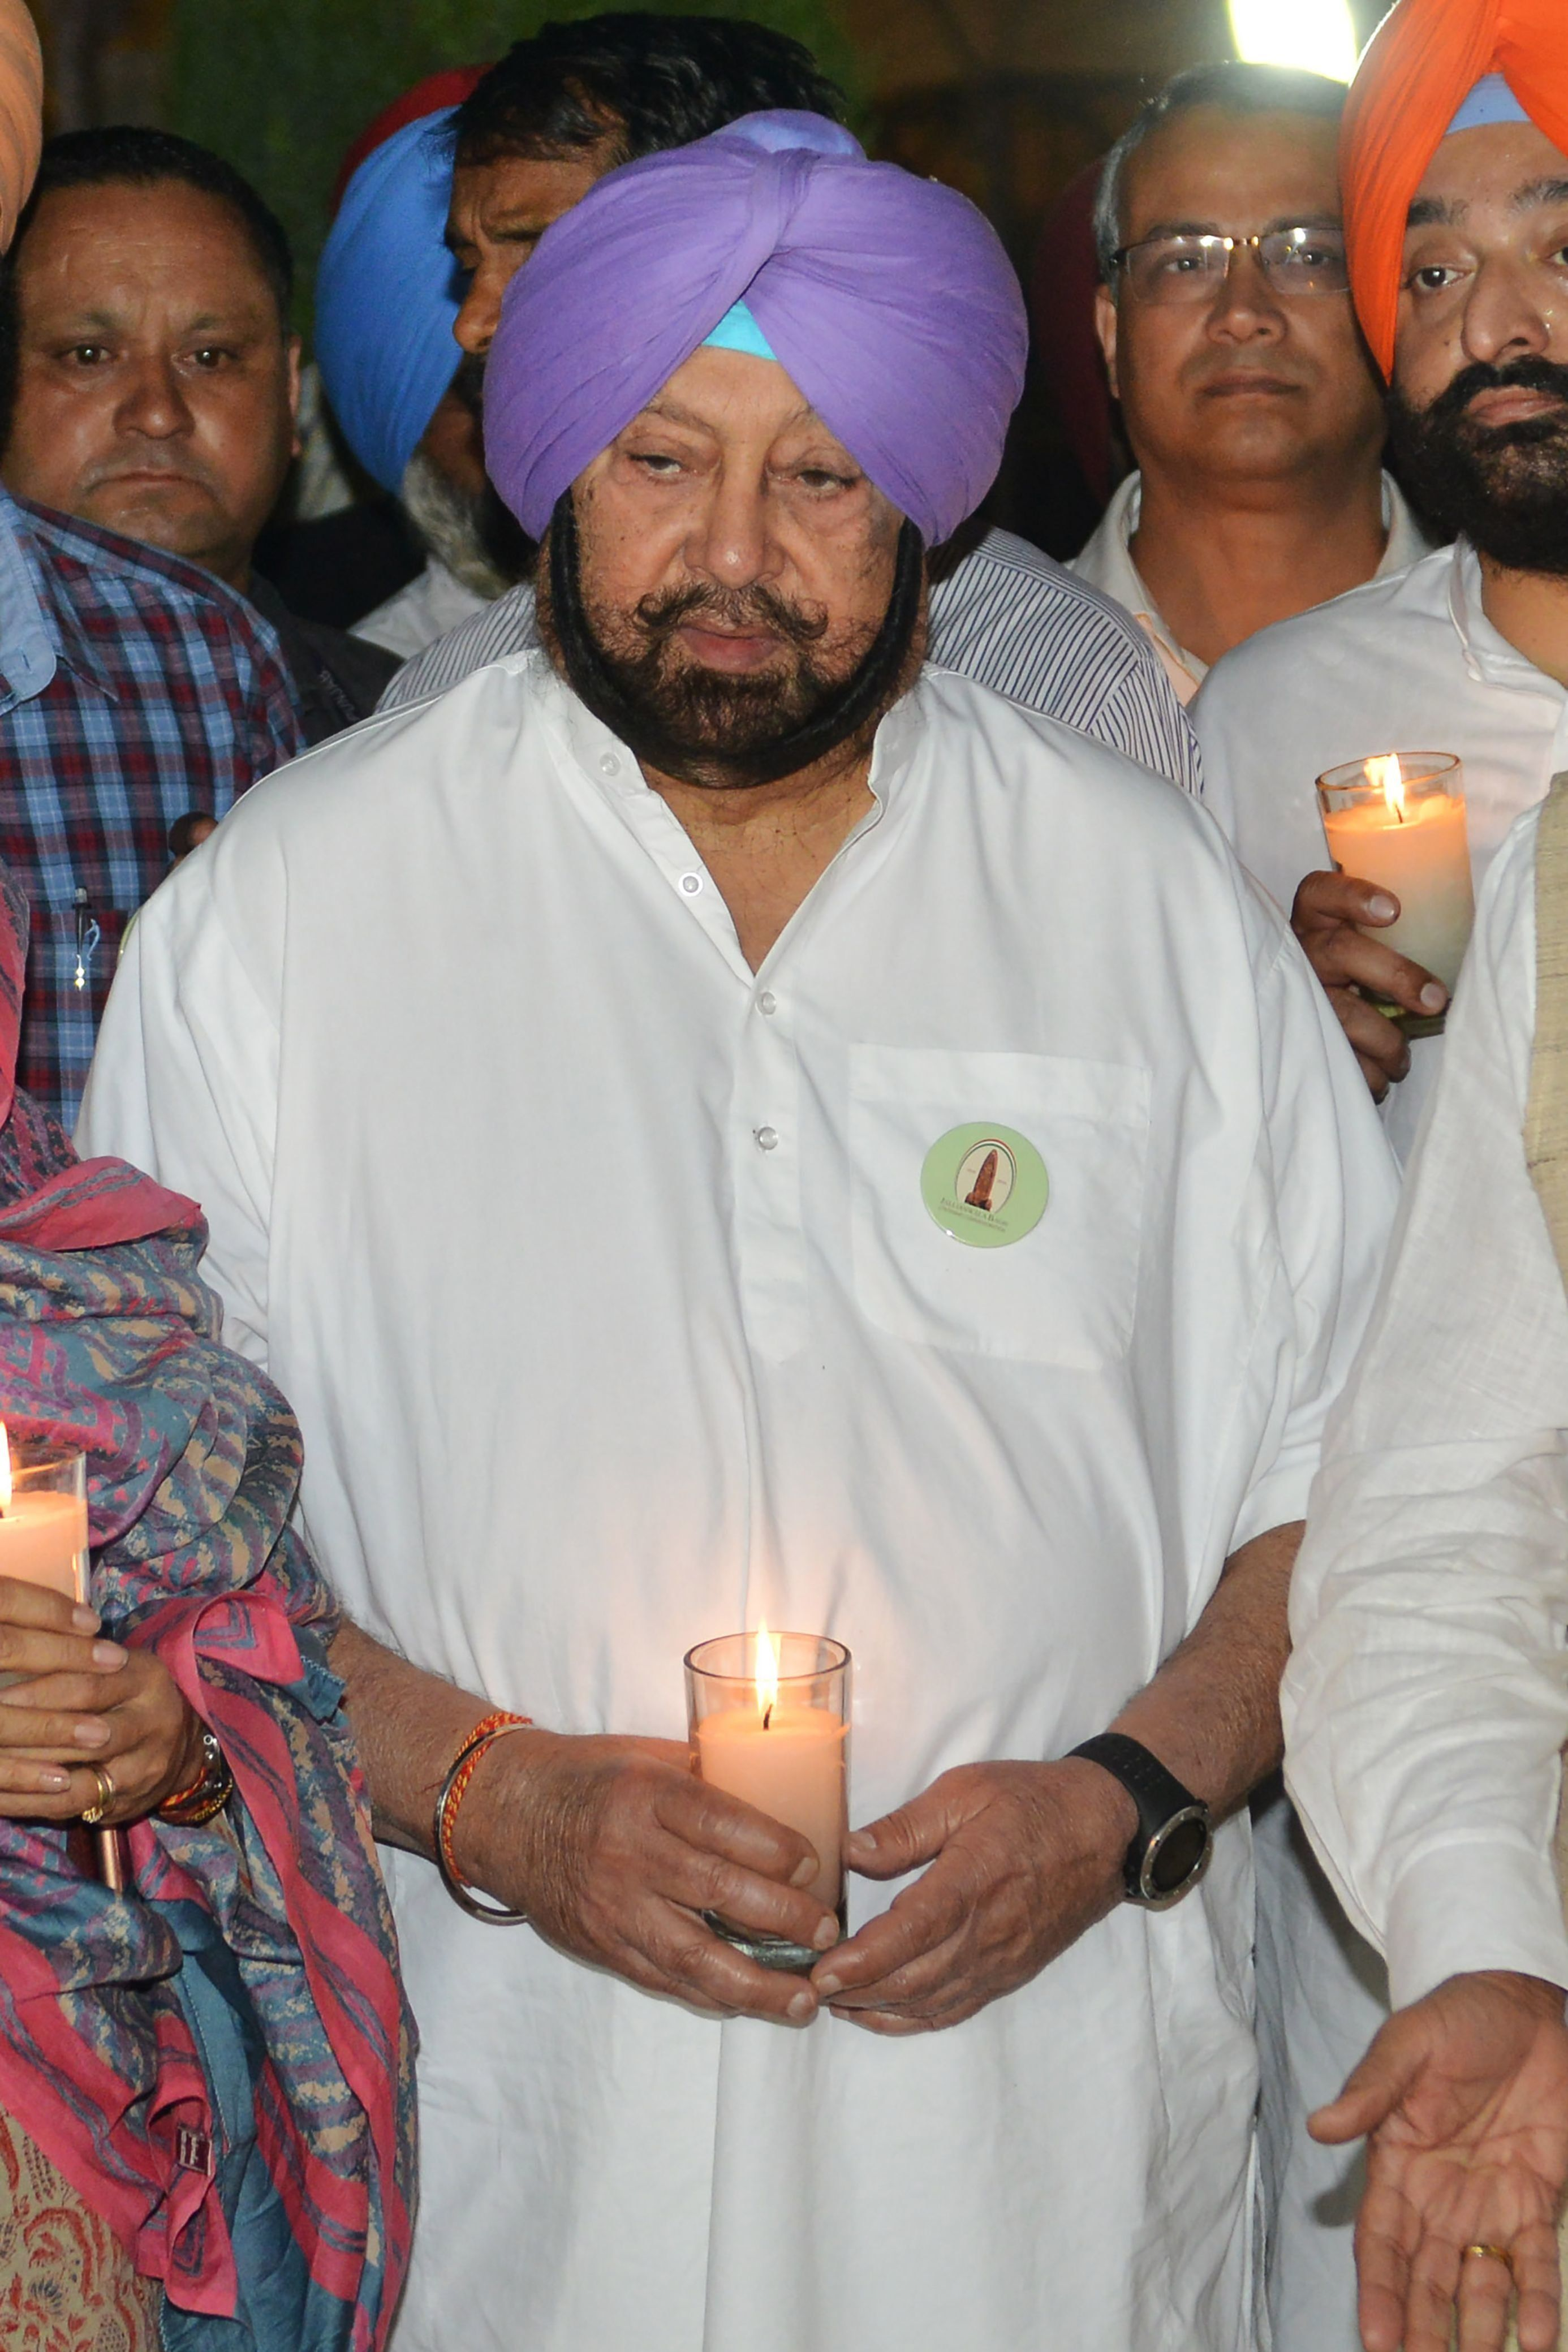 2 Punjabi Men Reportedly Beheaded In Saudi Arabia, Amarinder Condemns 'Barbaric'